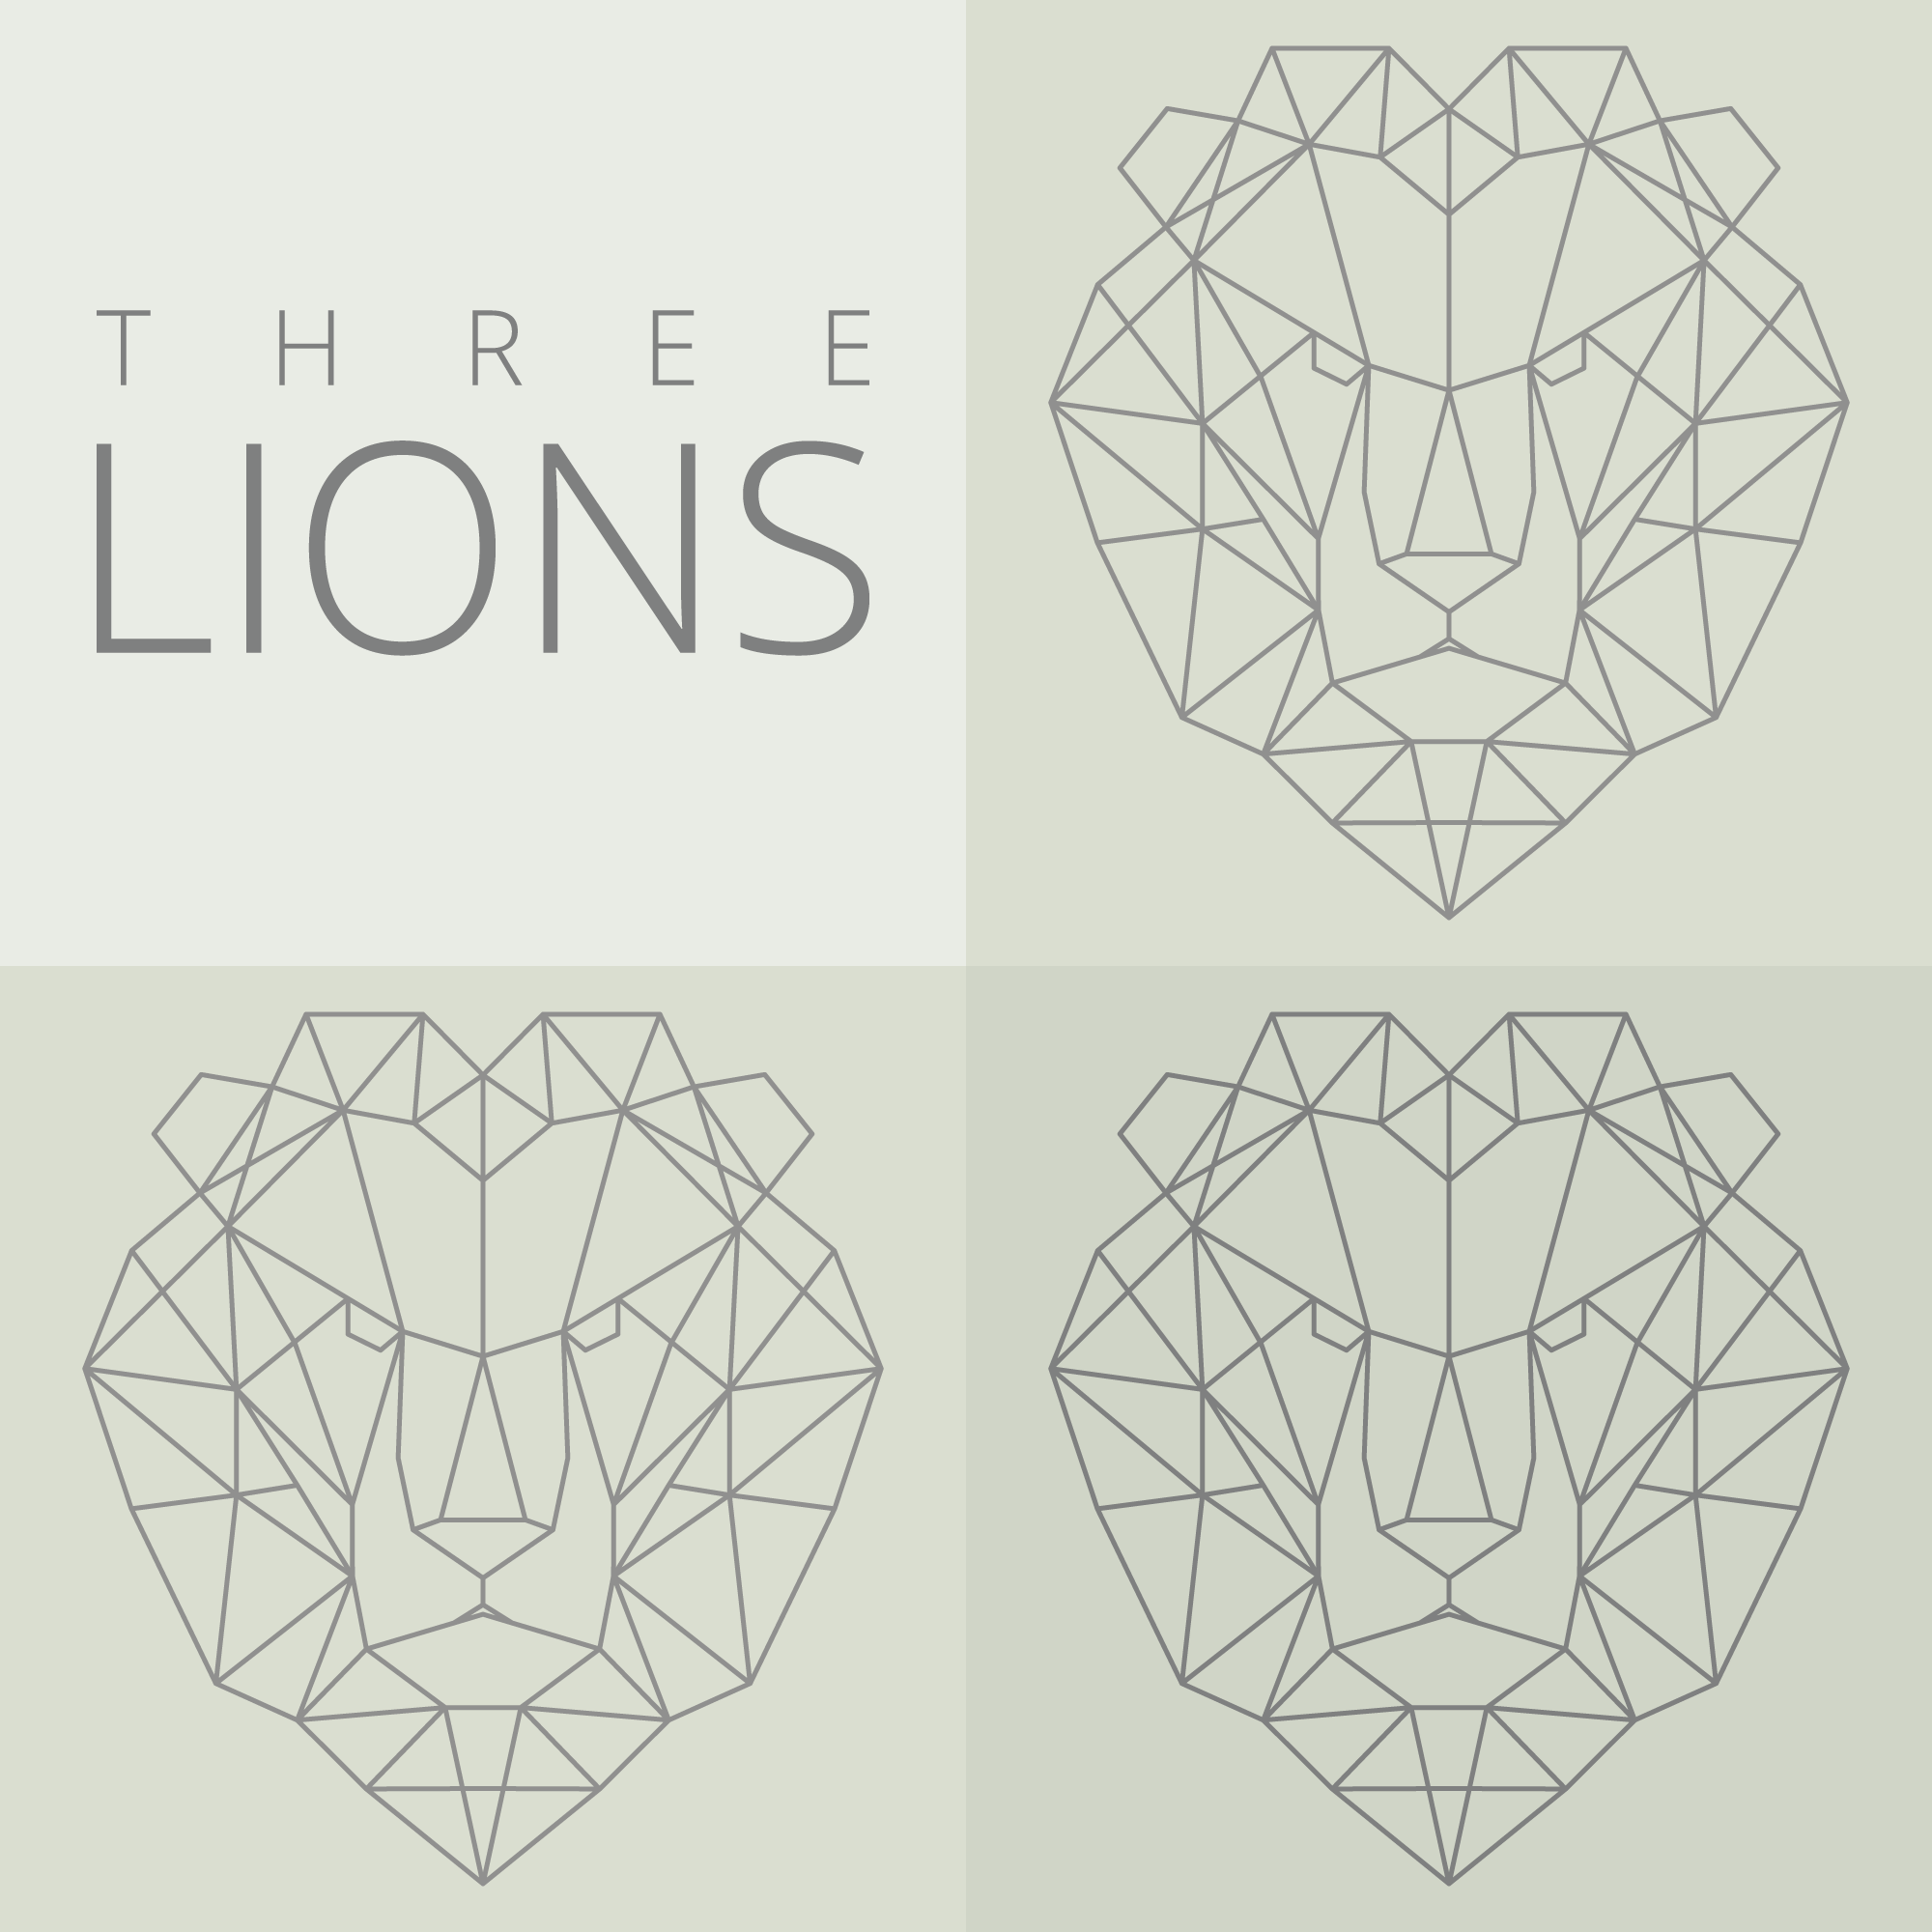 THREE LIONS DESIGN